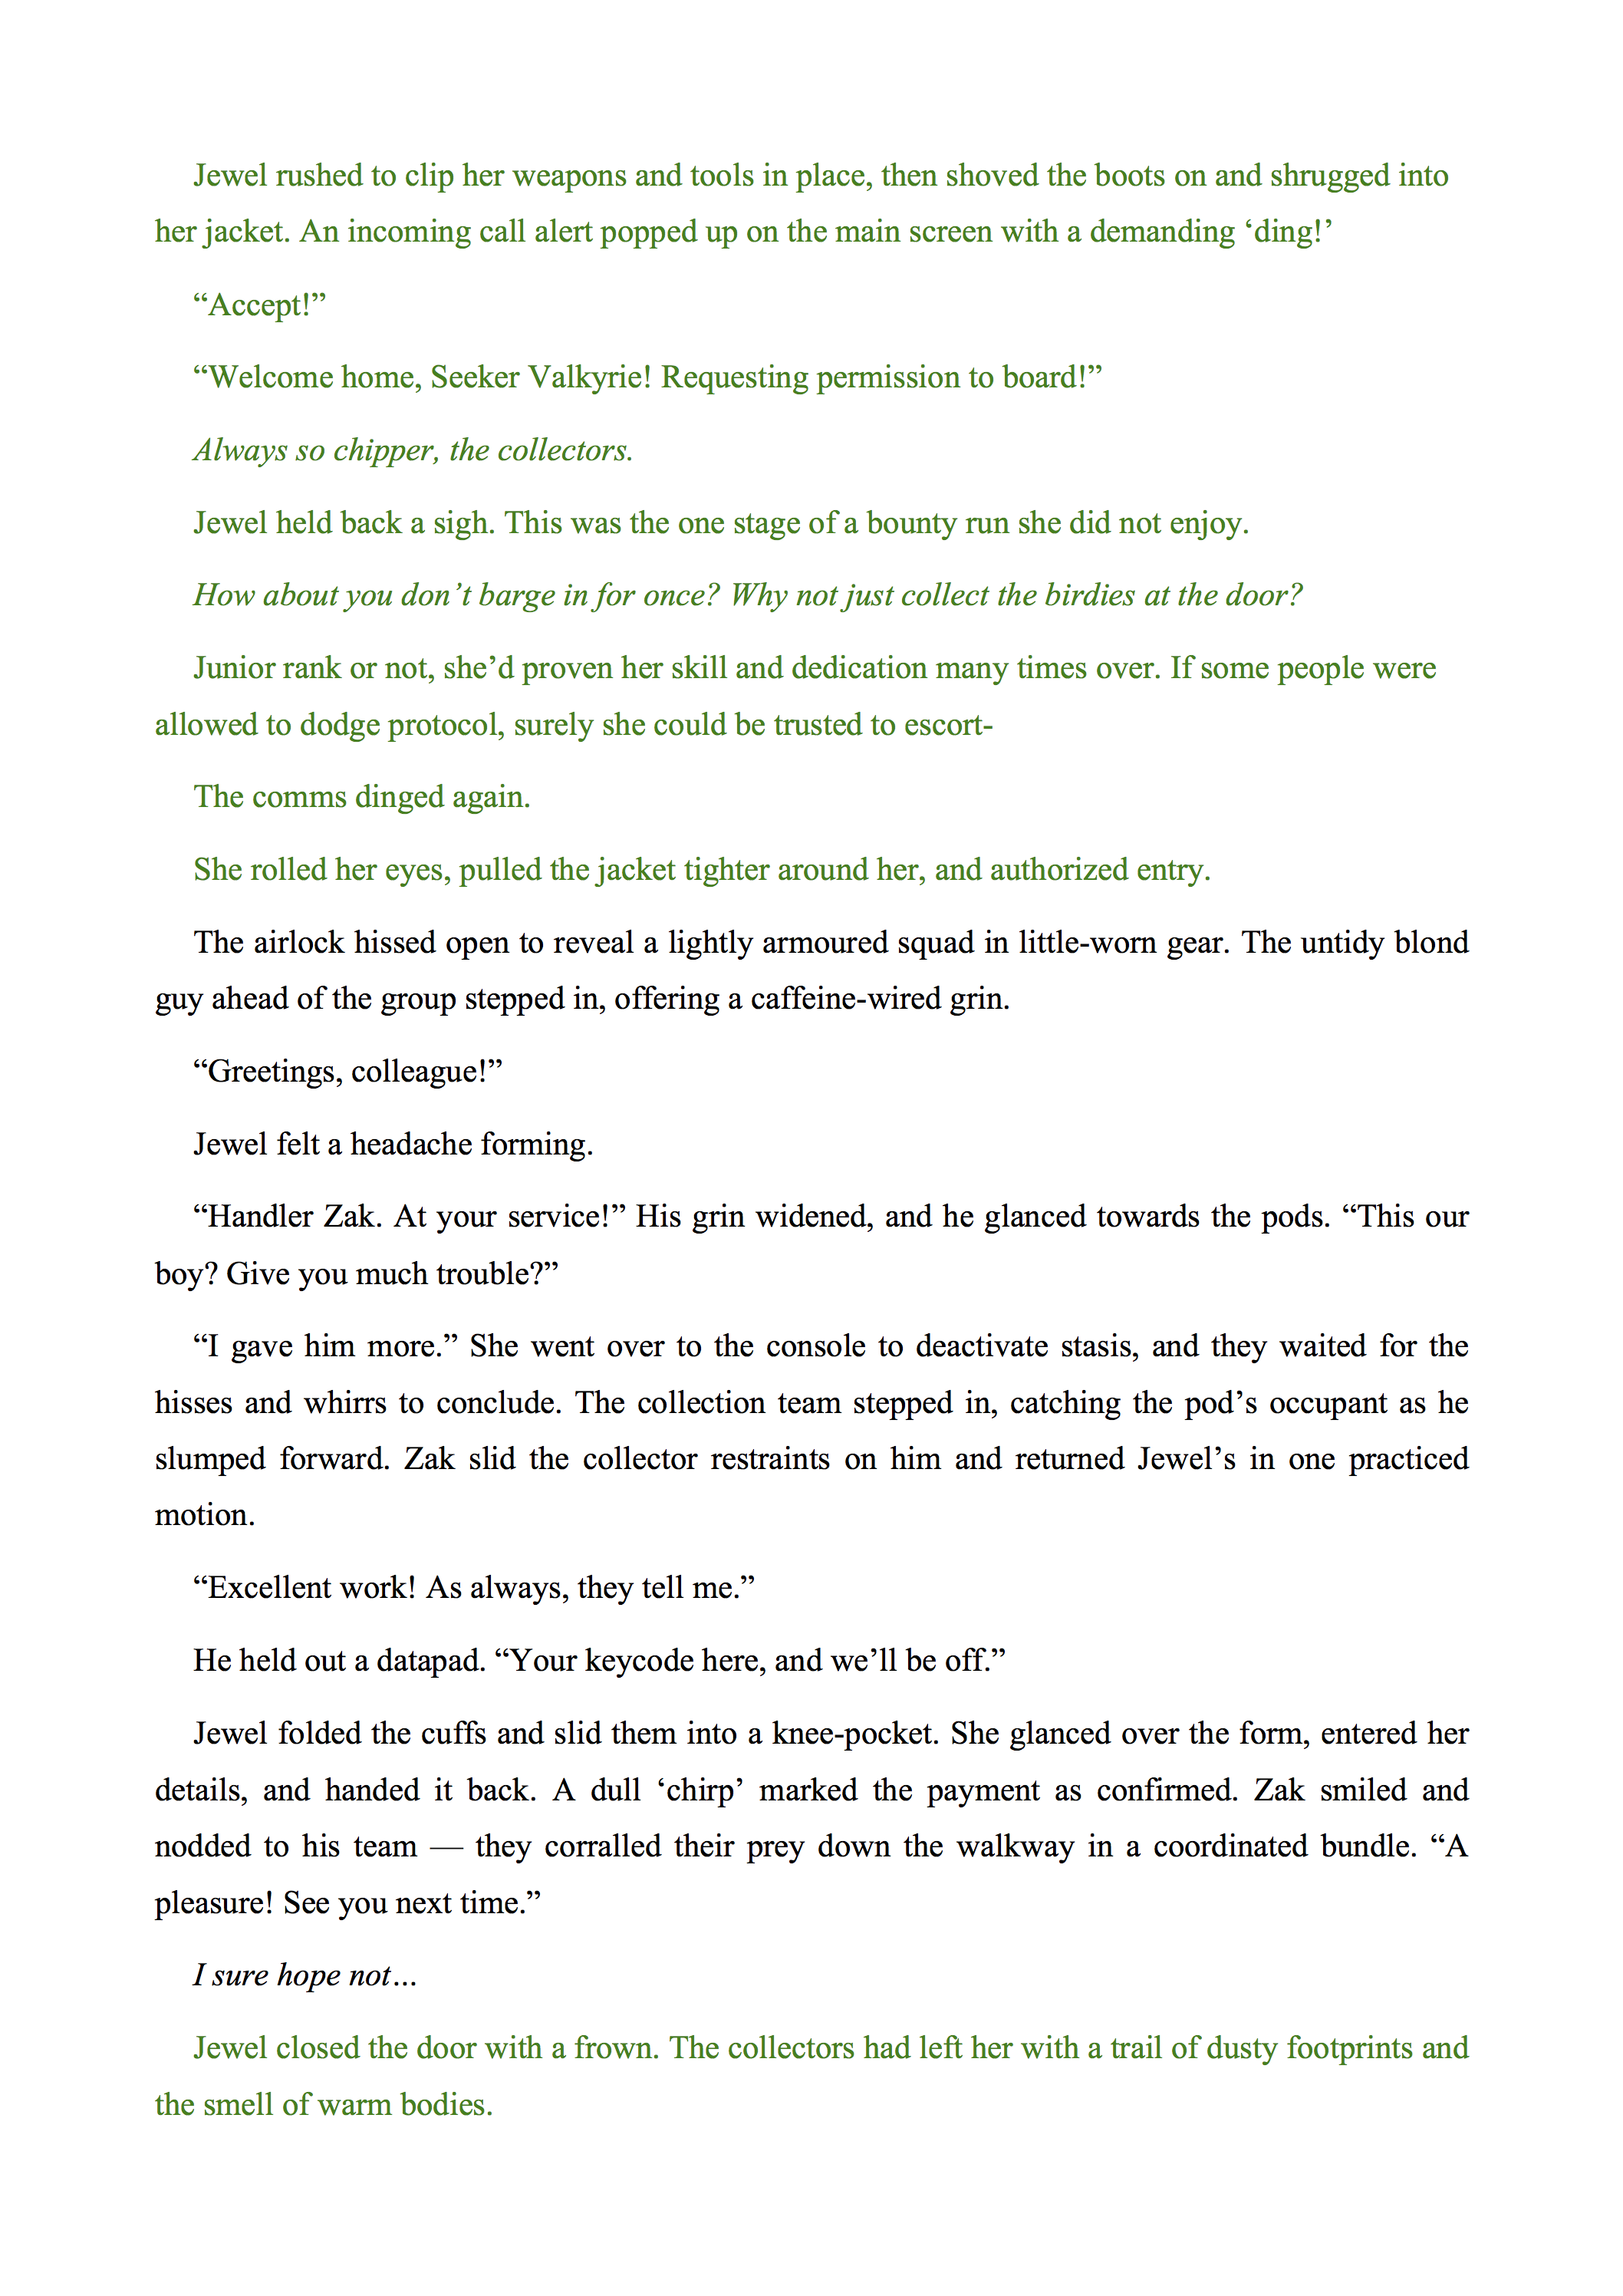 Ep-122-Scene-Conflict-Revised-p3.png